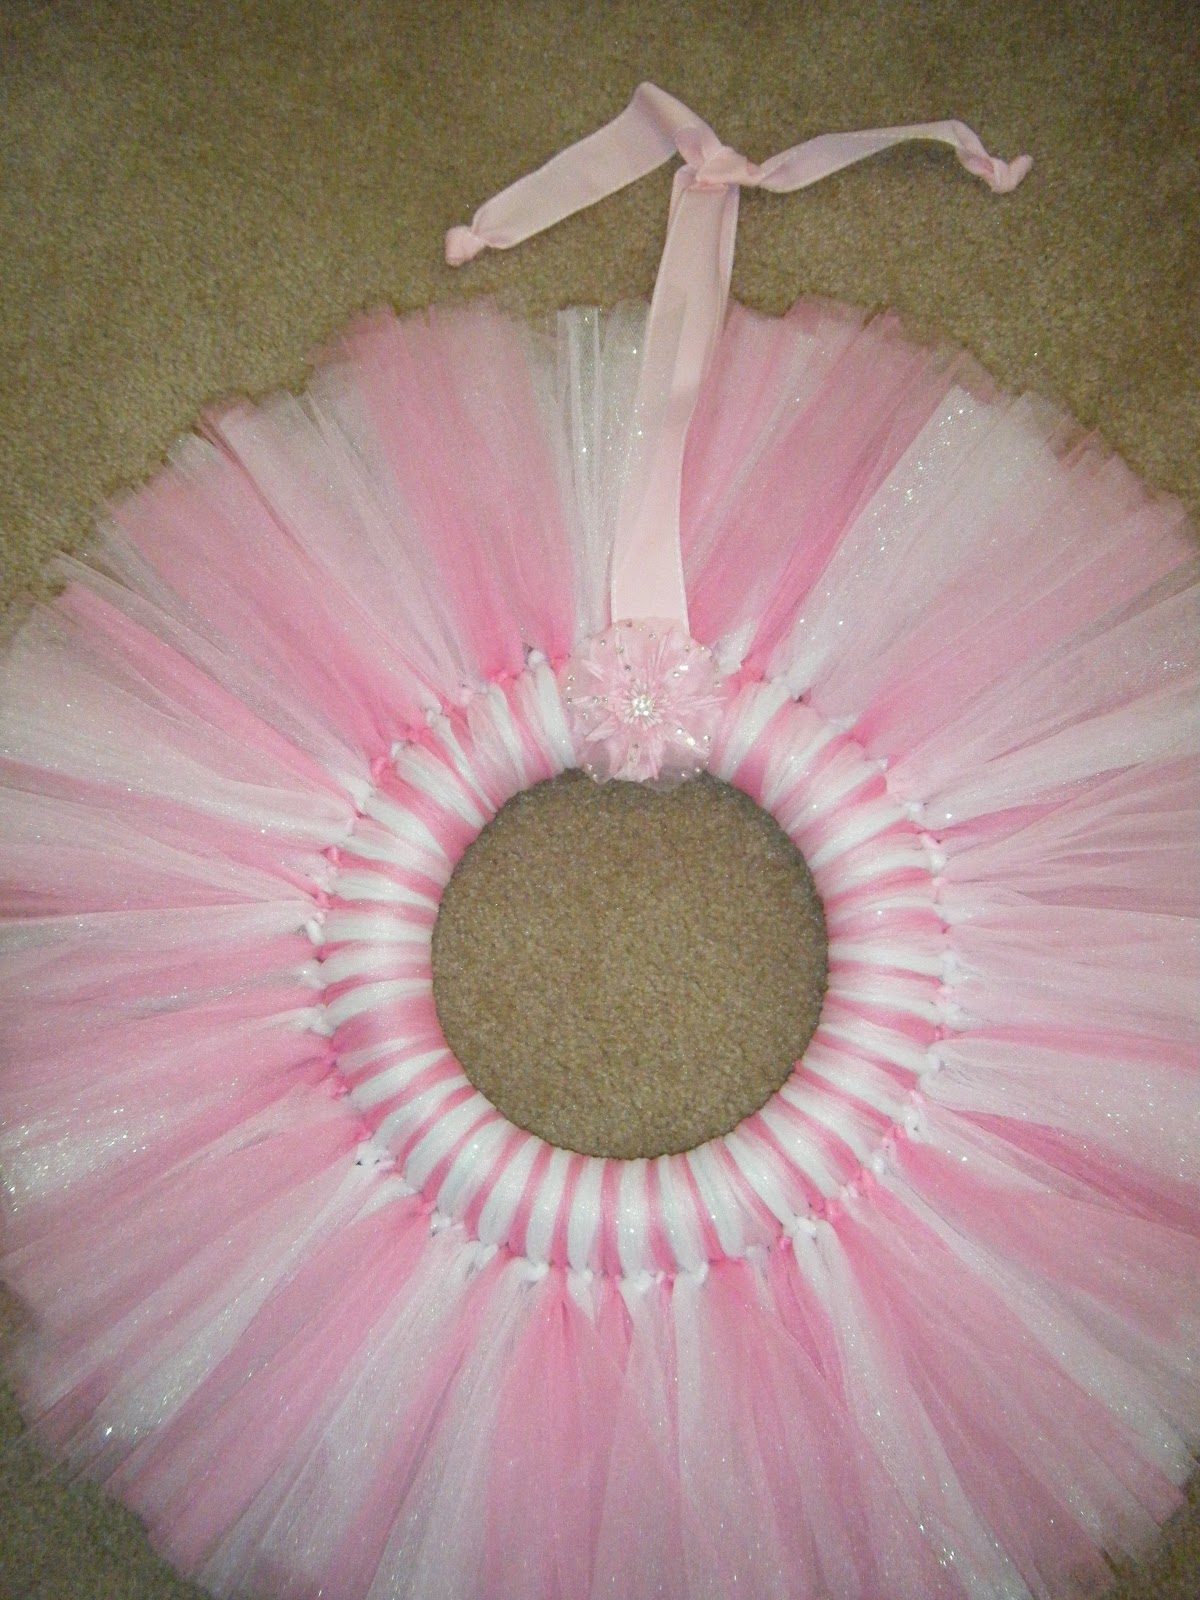 This is a St. Patrick's Day flat tulle wreath, made the same as the